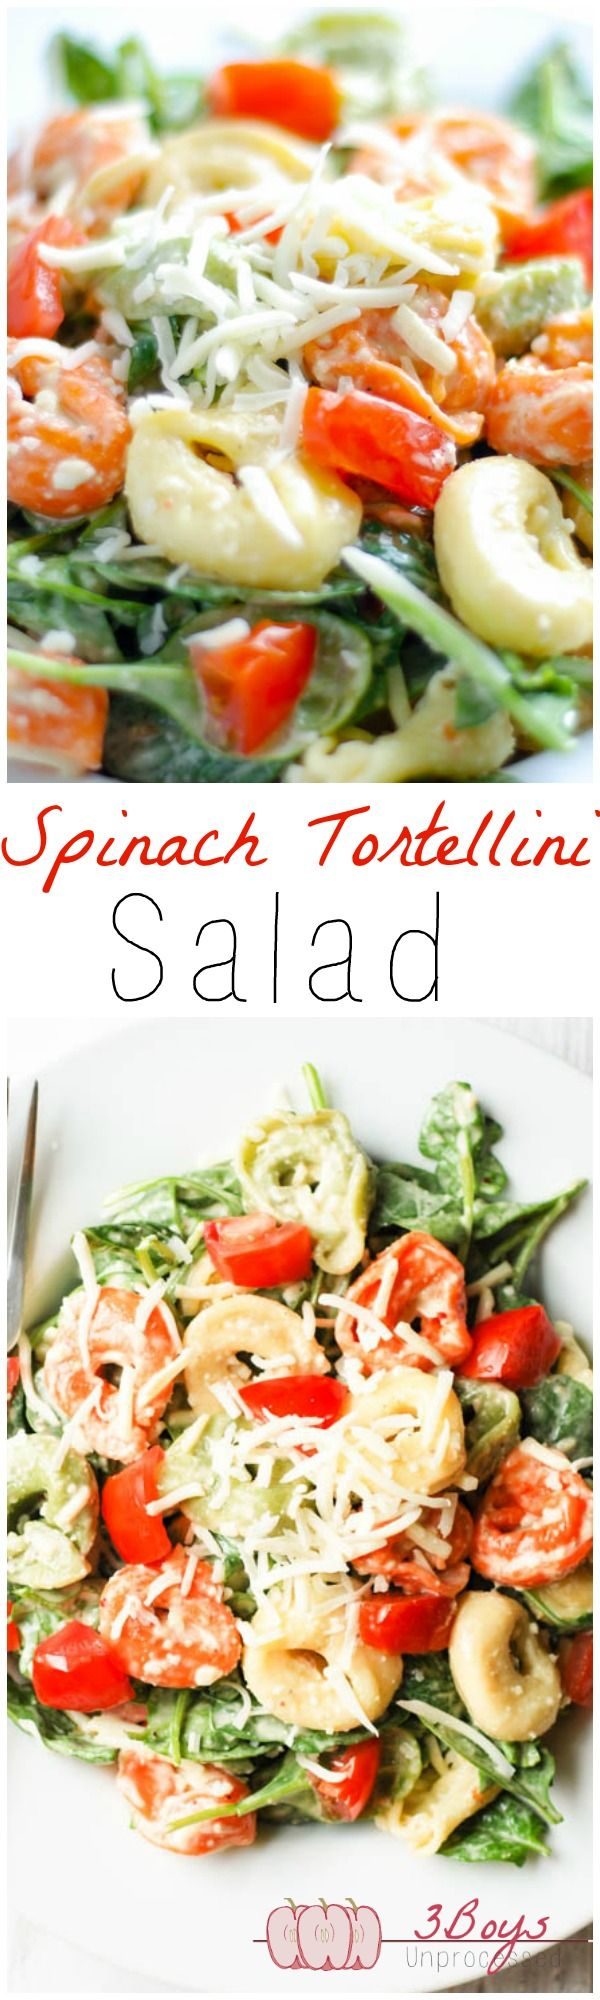 tiffany sign in Spinach and Tortellini Salad  The perfect balance of yummy   healthy  Complete with a delicious and easy homemade dressing that comes together in minutes     www 3boysunprocessed com